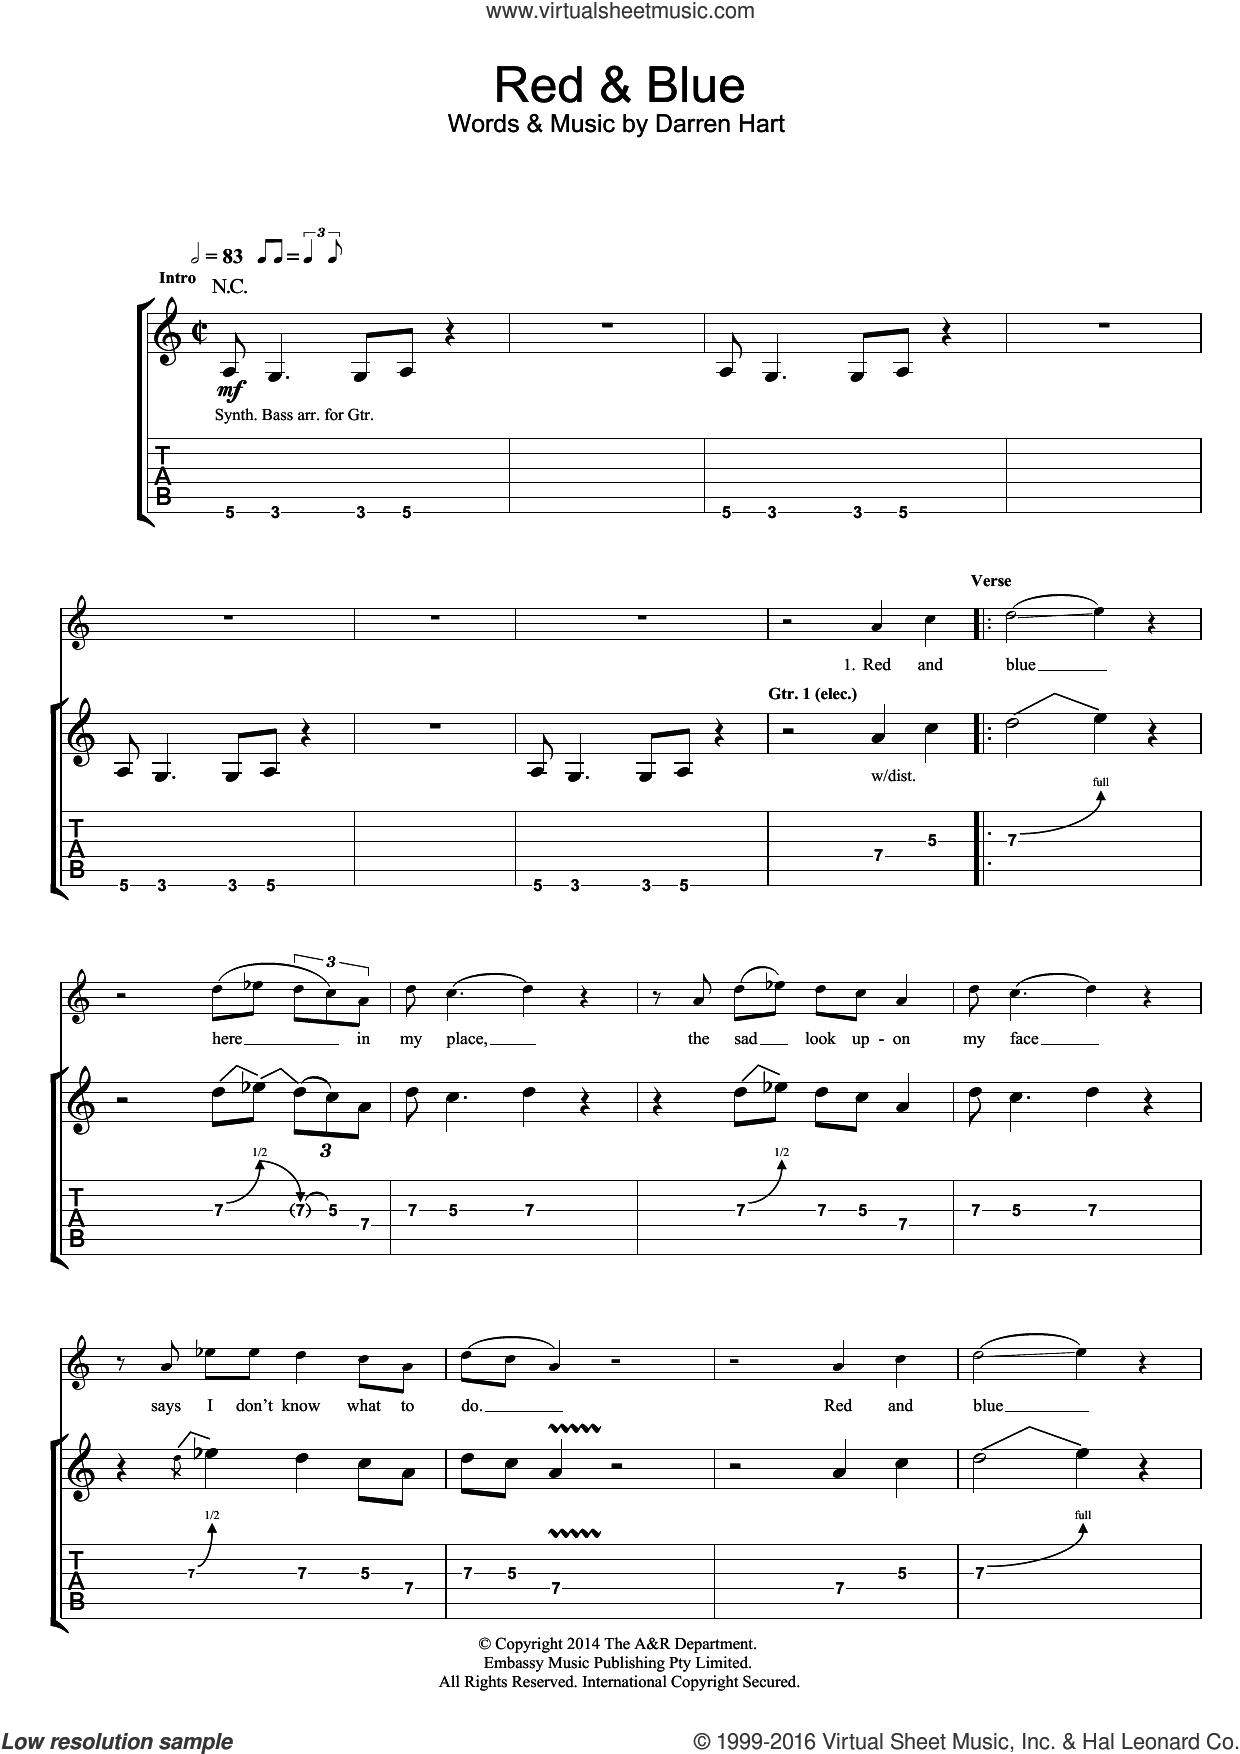 Red And Blue sheet music for guitar (tablature) by Darren Hart and Harts. Score Image Preview.